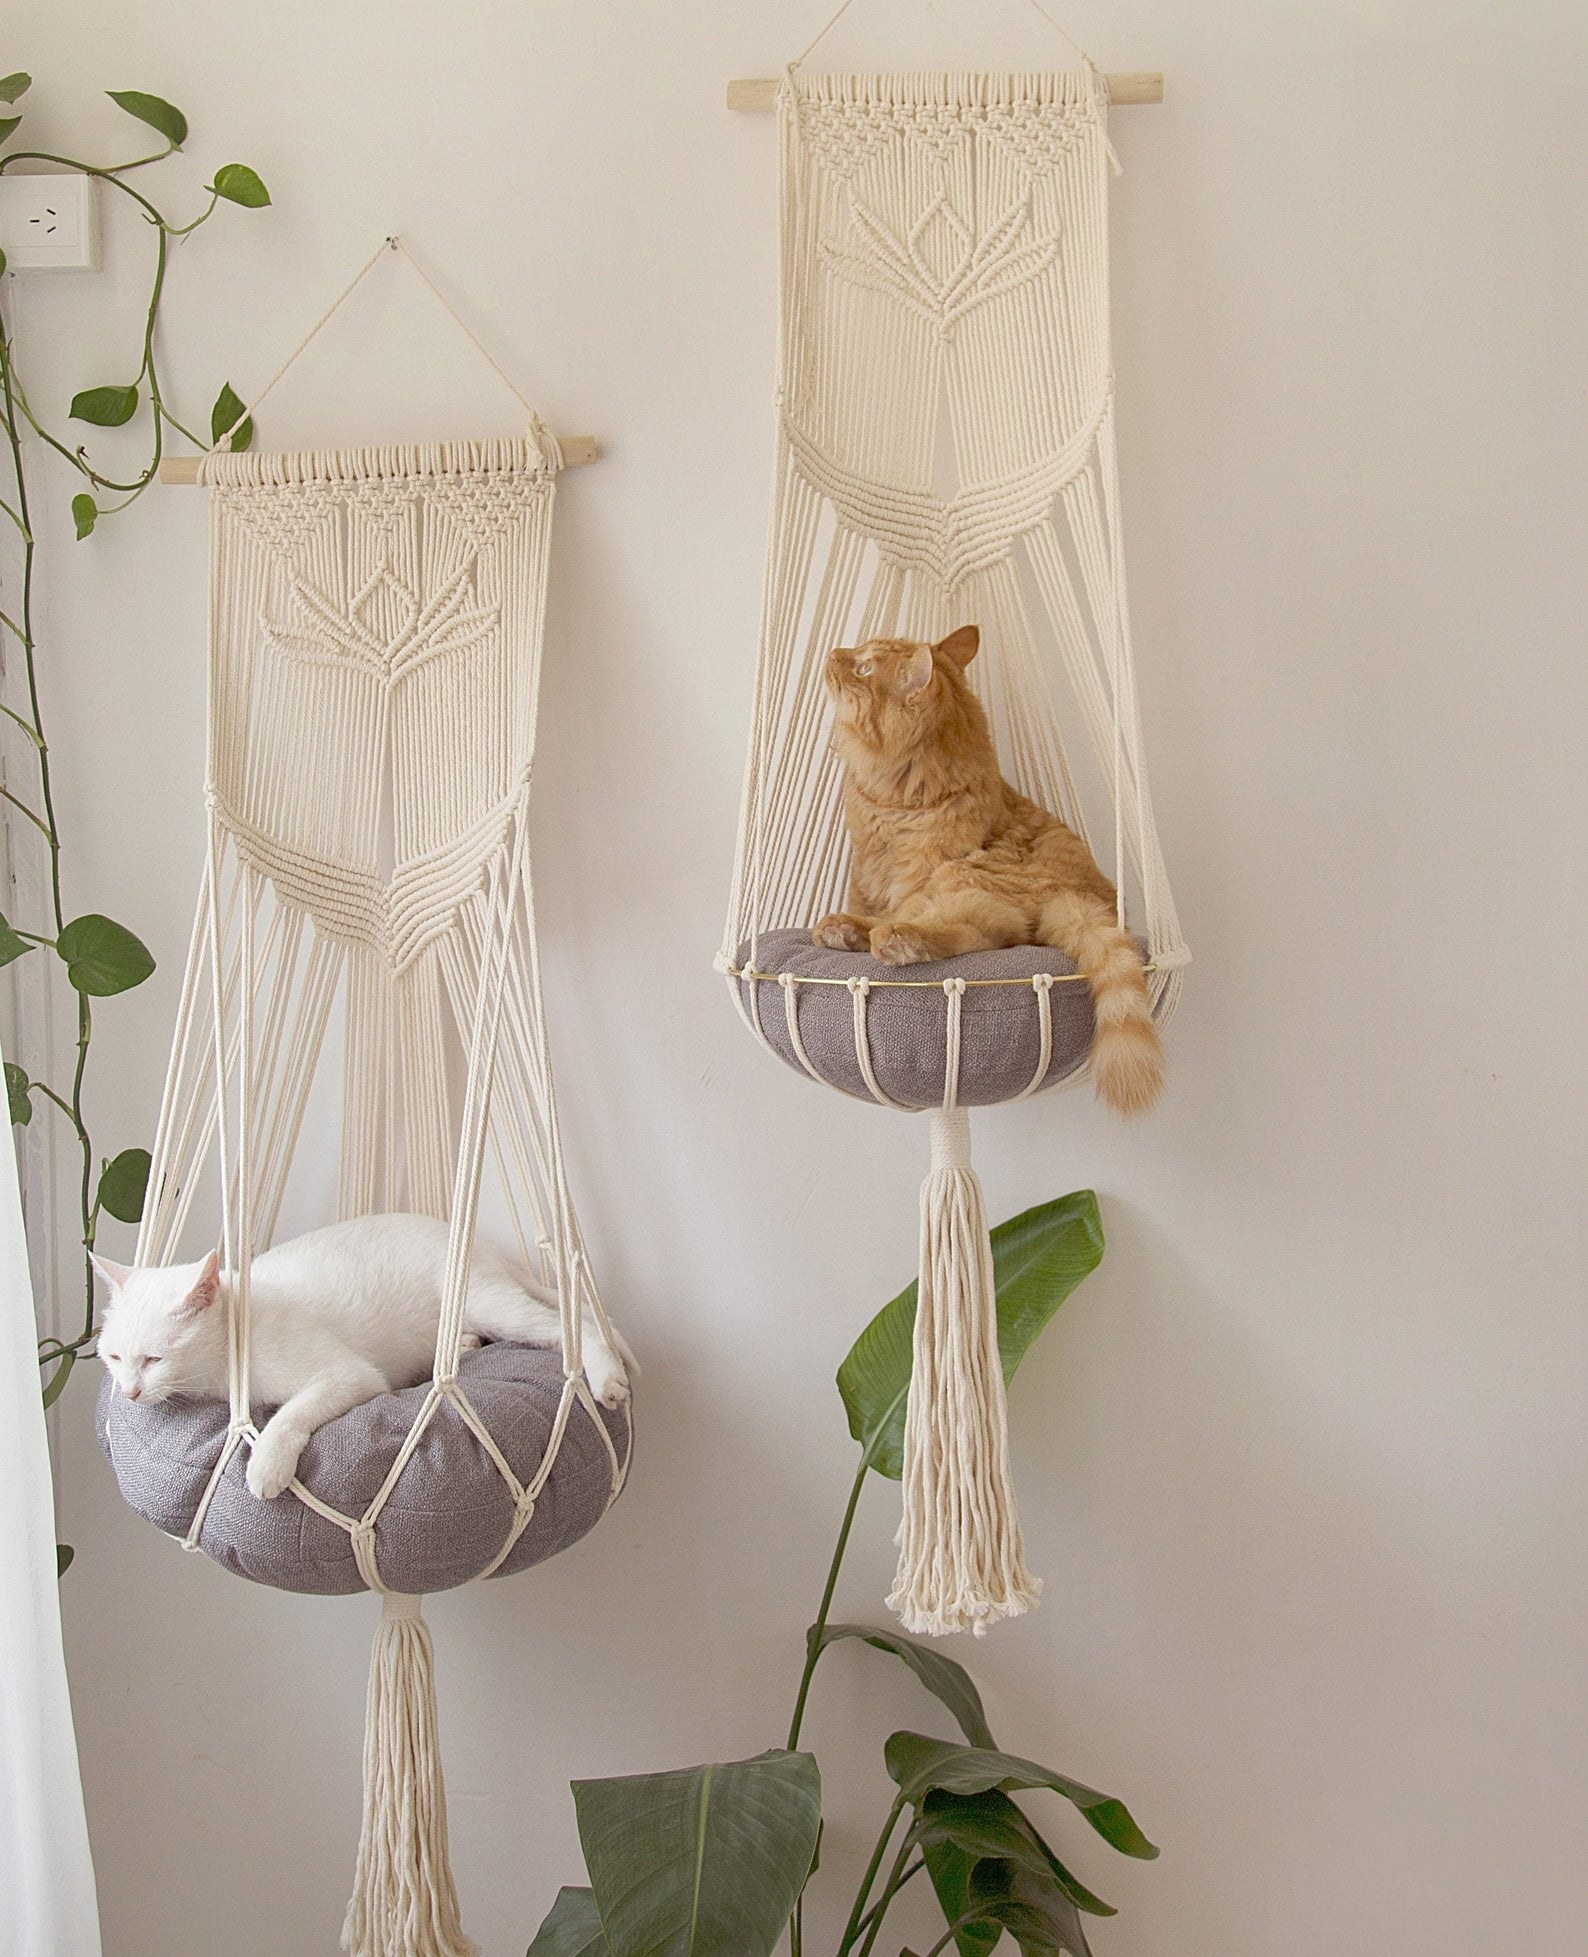 Two cats lounging on separate macrame hammock beds